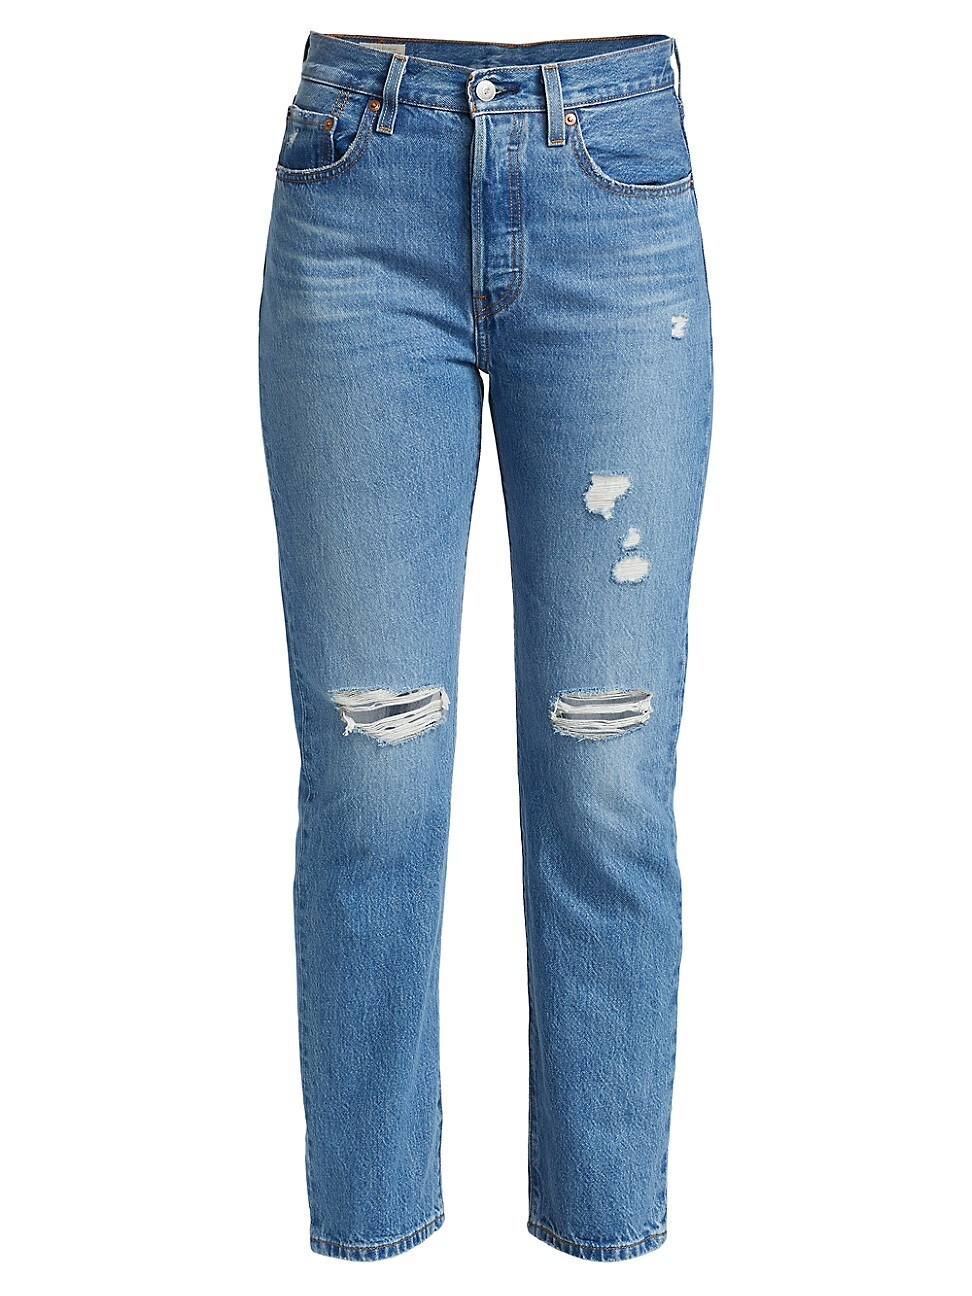 Levi's WOMEN'S 501® HIGH-RISE DISTRESSED STRAIGHT JEANS